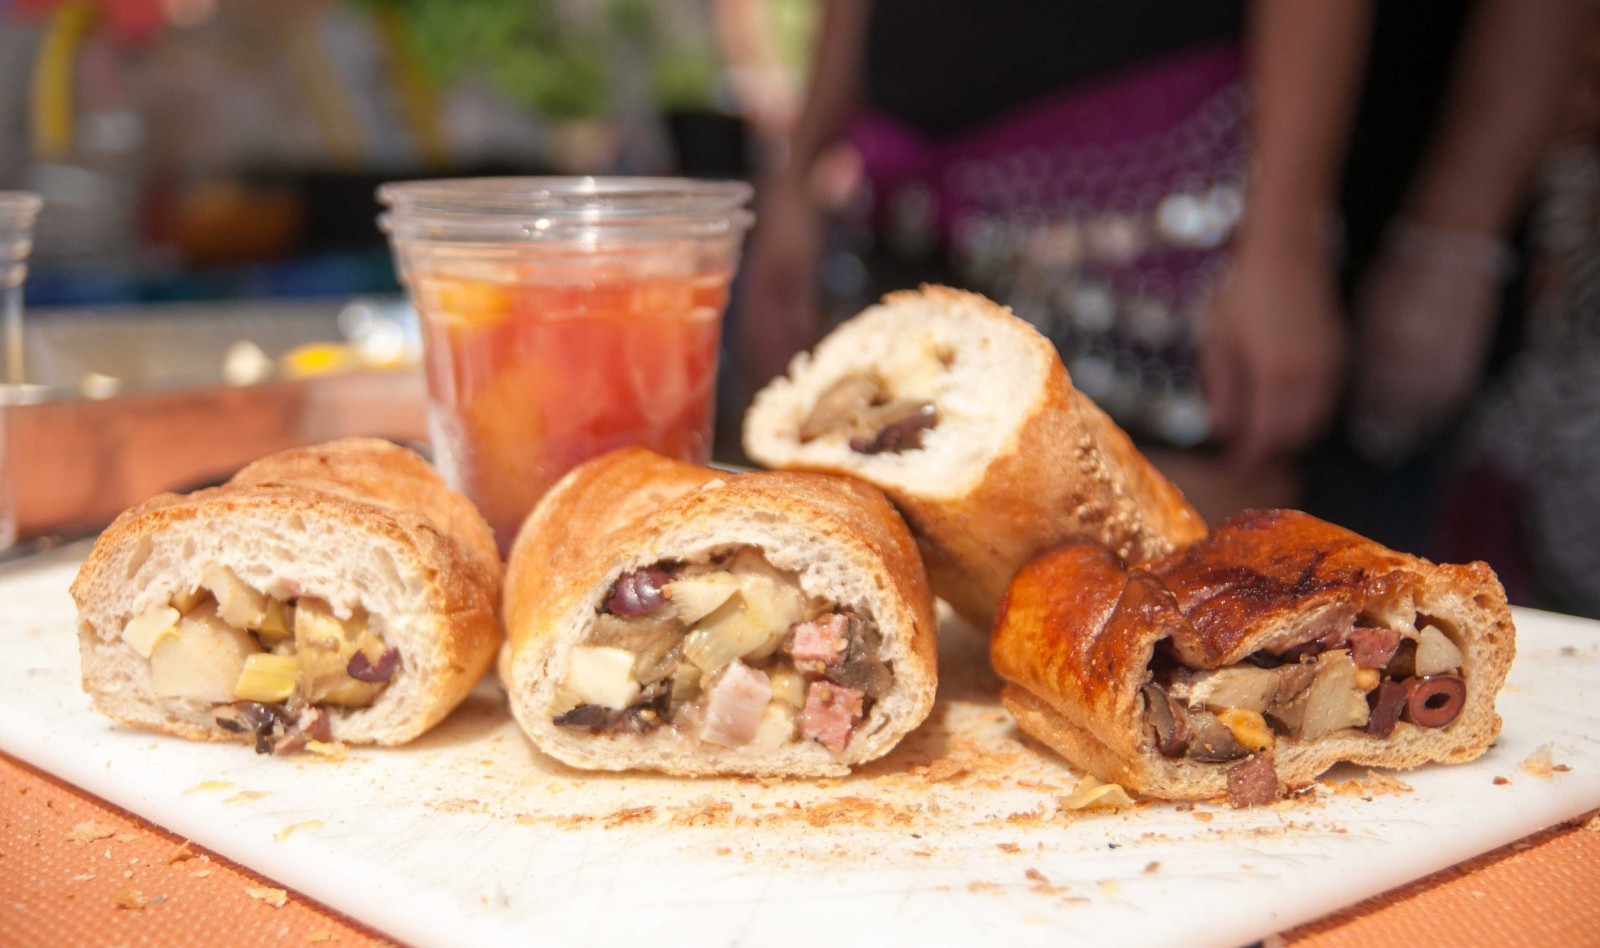 Stuffed bread and Gypsy Juice from Gypsy Parlor during the 2014 Taste of Diversity. (Matt Weinberg/Special to The News)